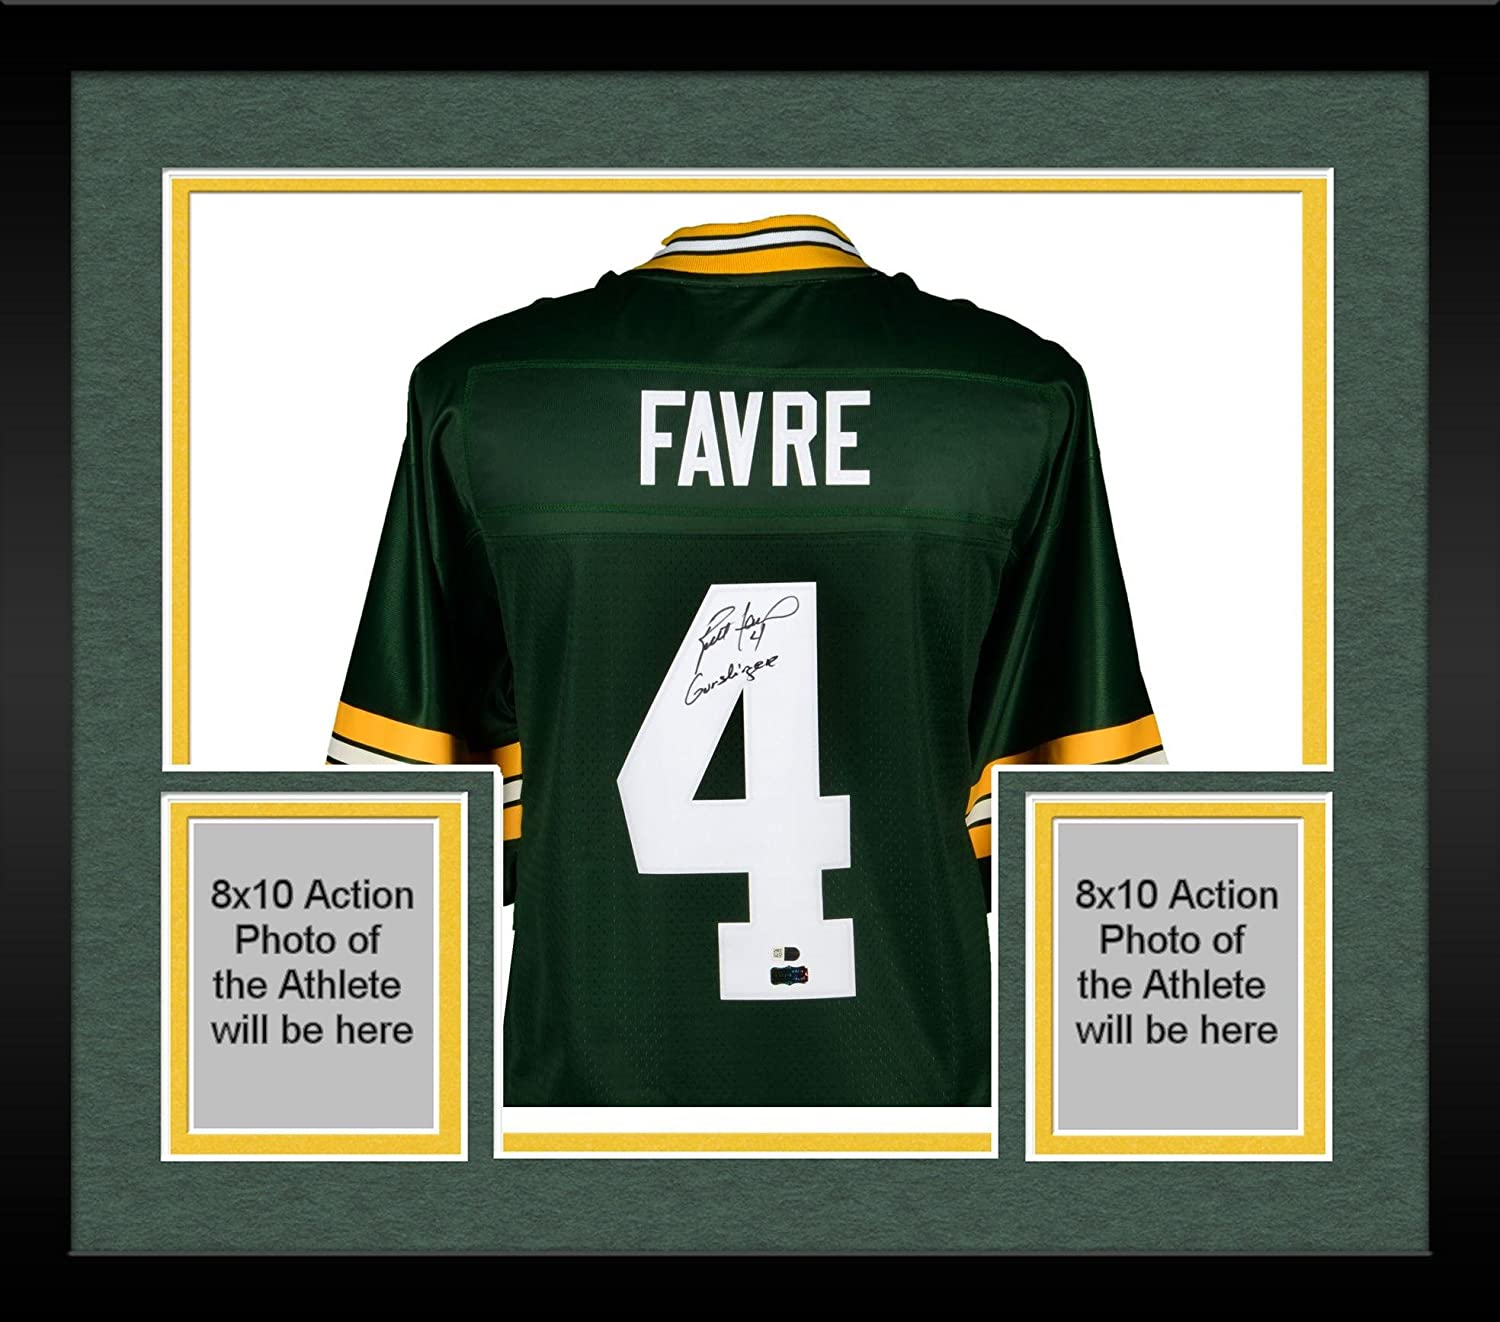 7055b83d8 Framed Brett Favre Green Bay Packers Autographed Green Pro-Line Jersey  with